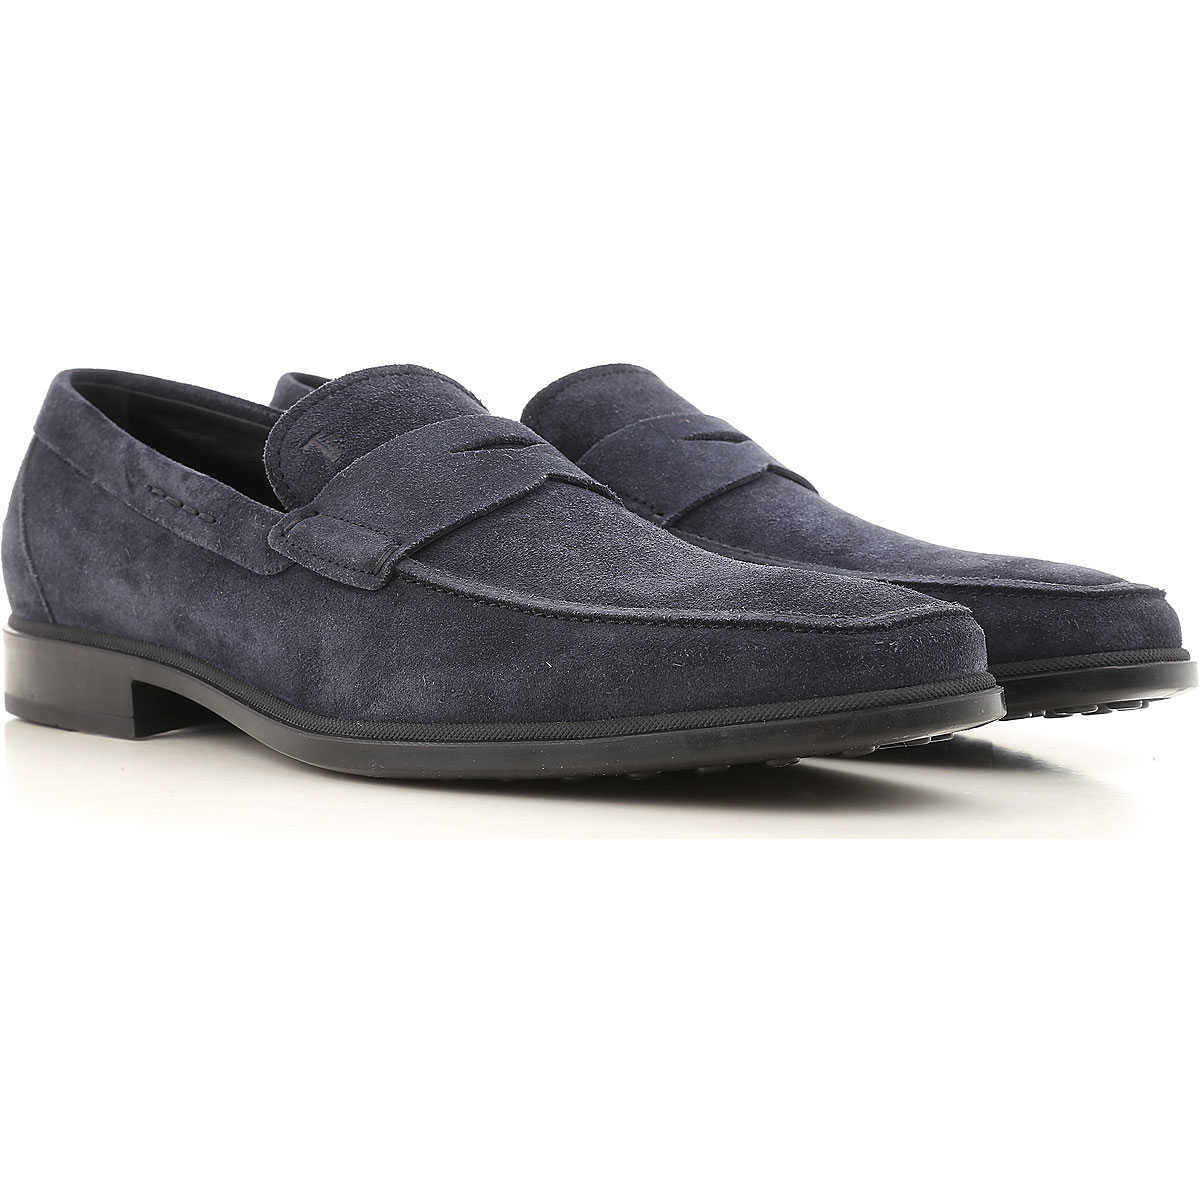 Tods Loafers for Men On Sale Midnight UK - GOOFASH